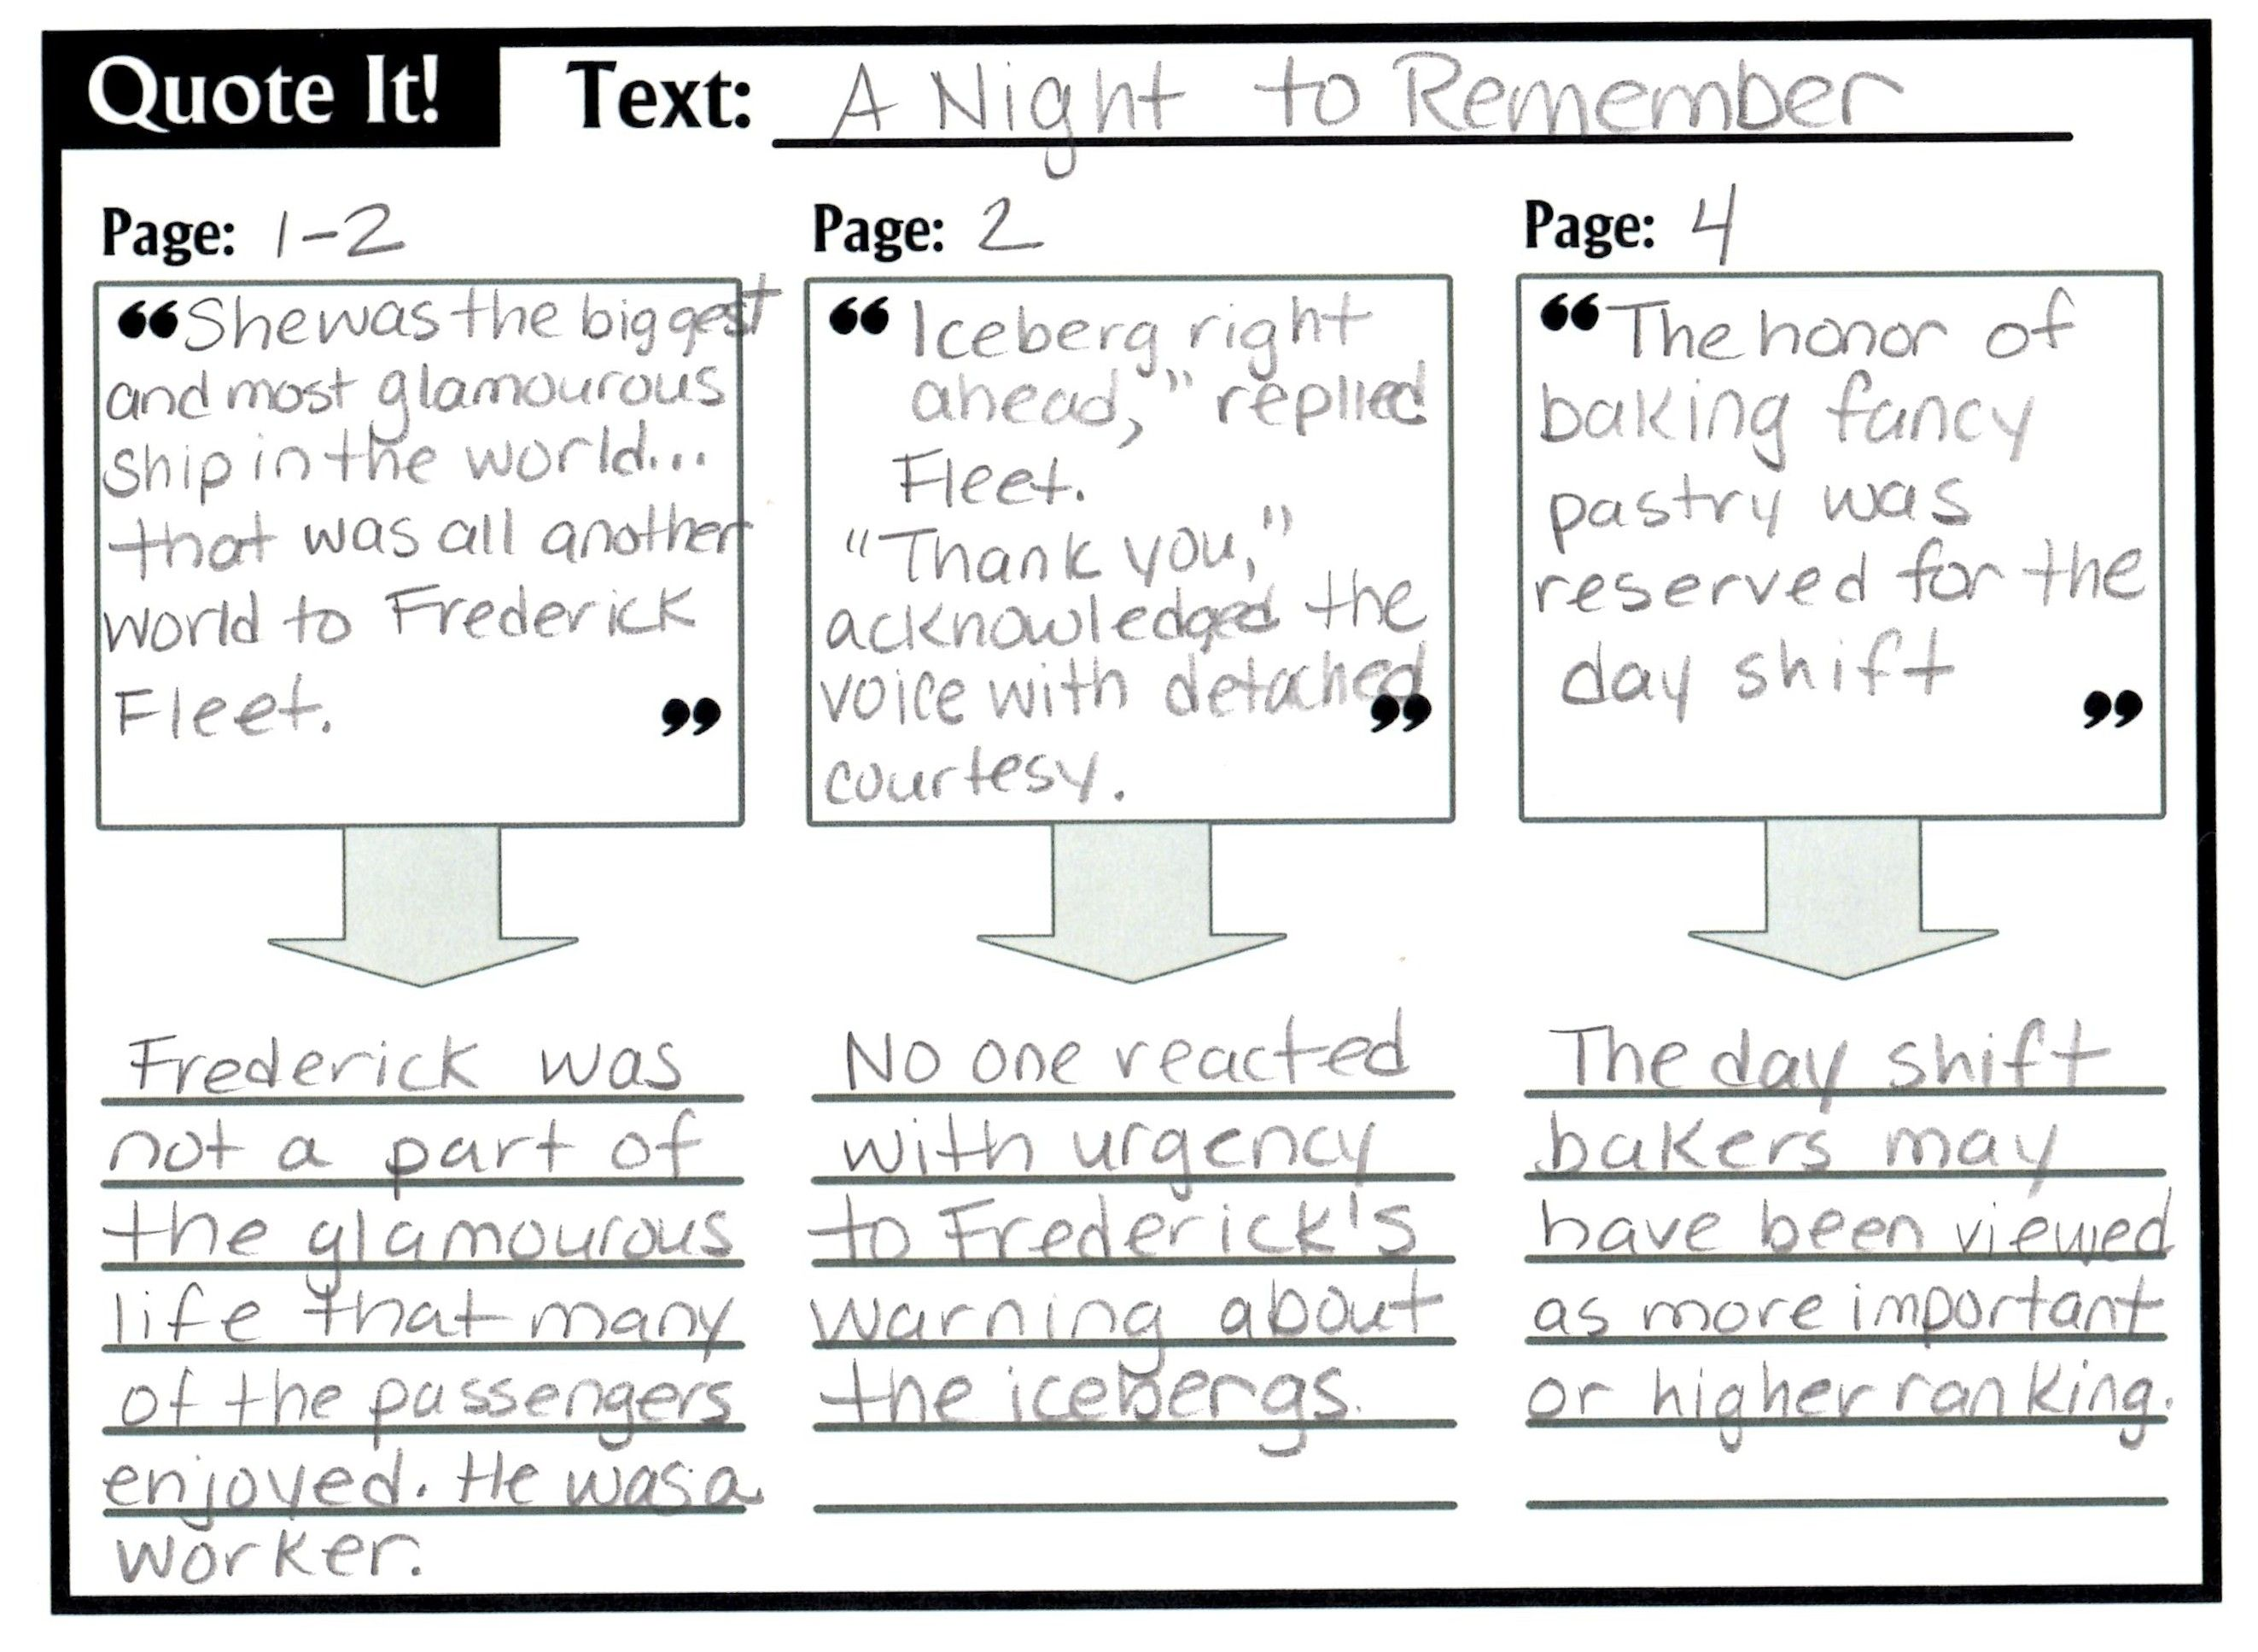 quote it graphic organizer good lesson idea by dr roz quote it graphic organizer good lesson idea by dr roz